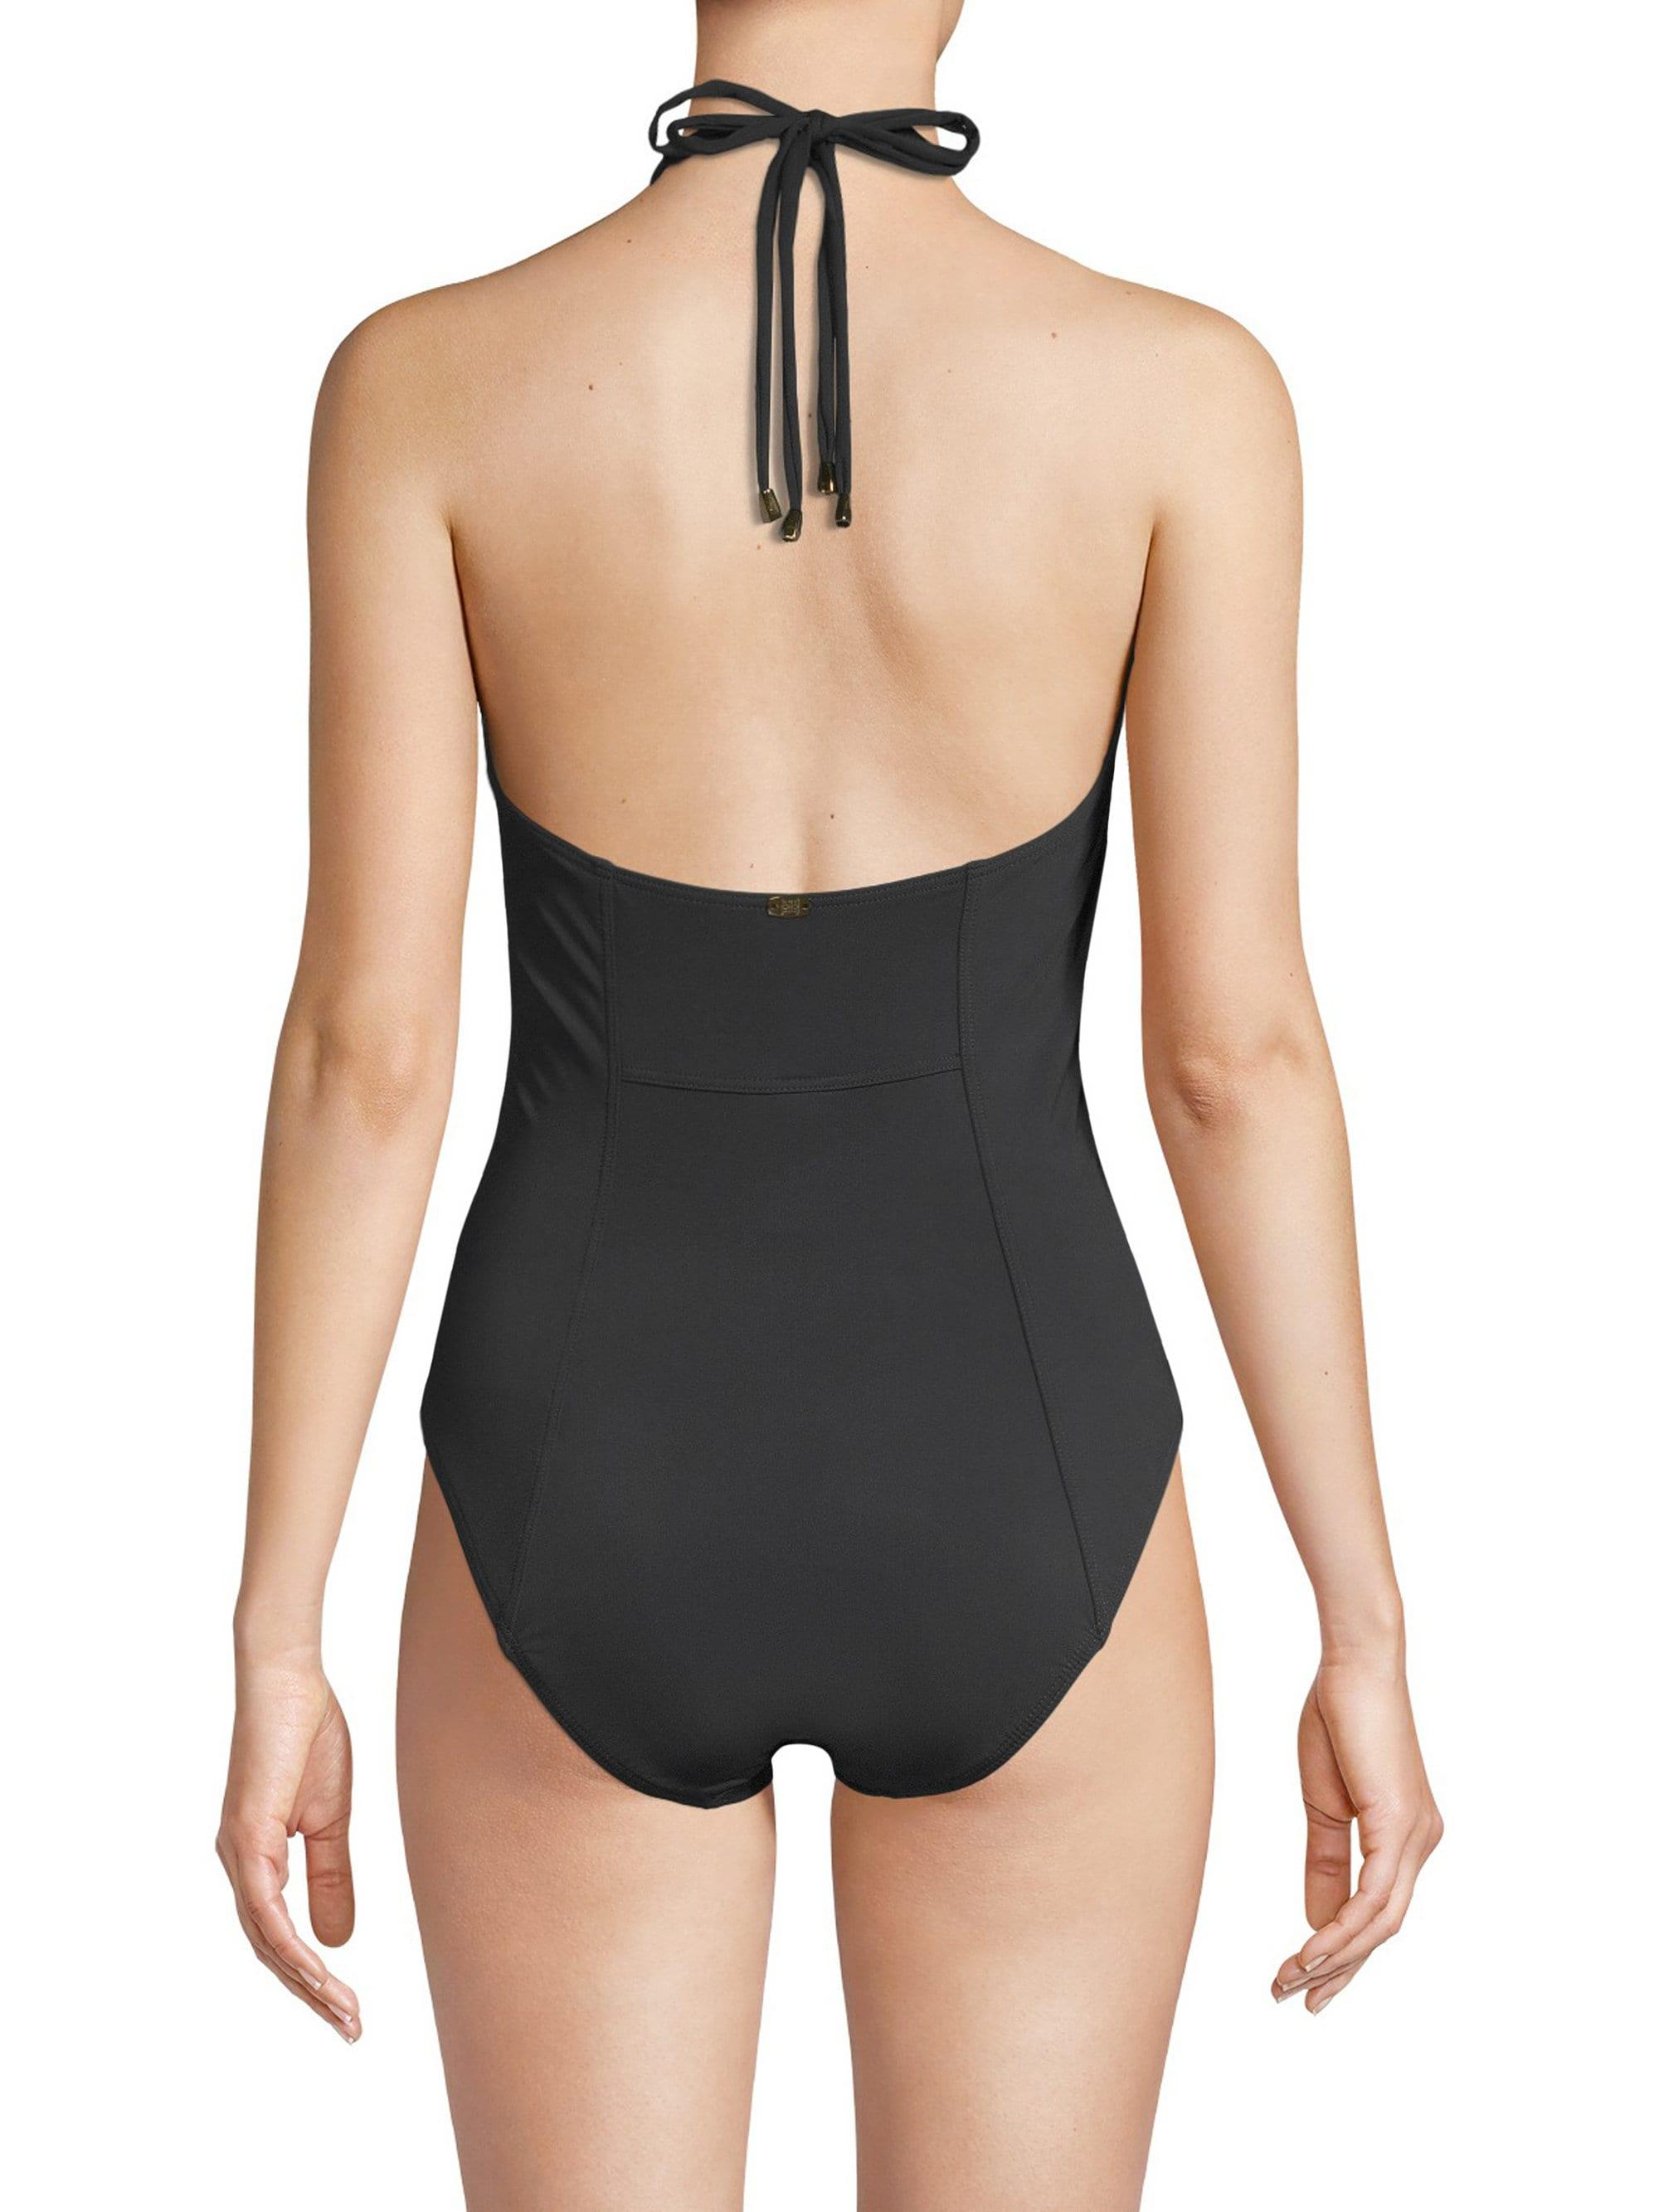 ae9ac89fd71 Lyst - Miraclesuit Women's Meridian Lyra Halter One-piece Swimsuit - Black  - Size 14 in Black